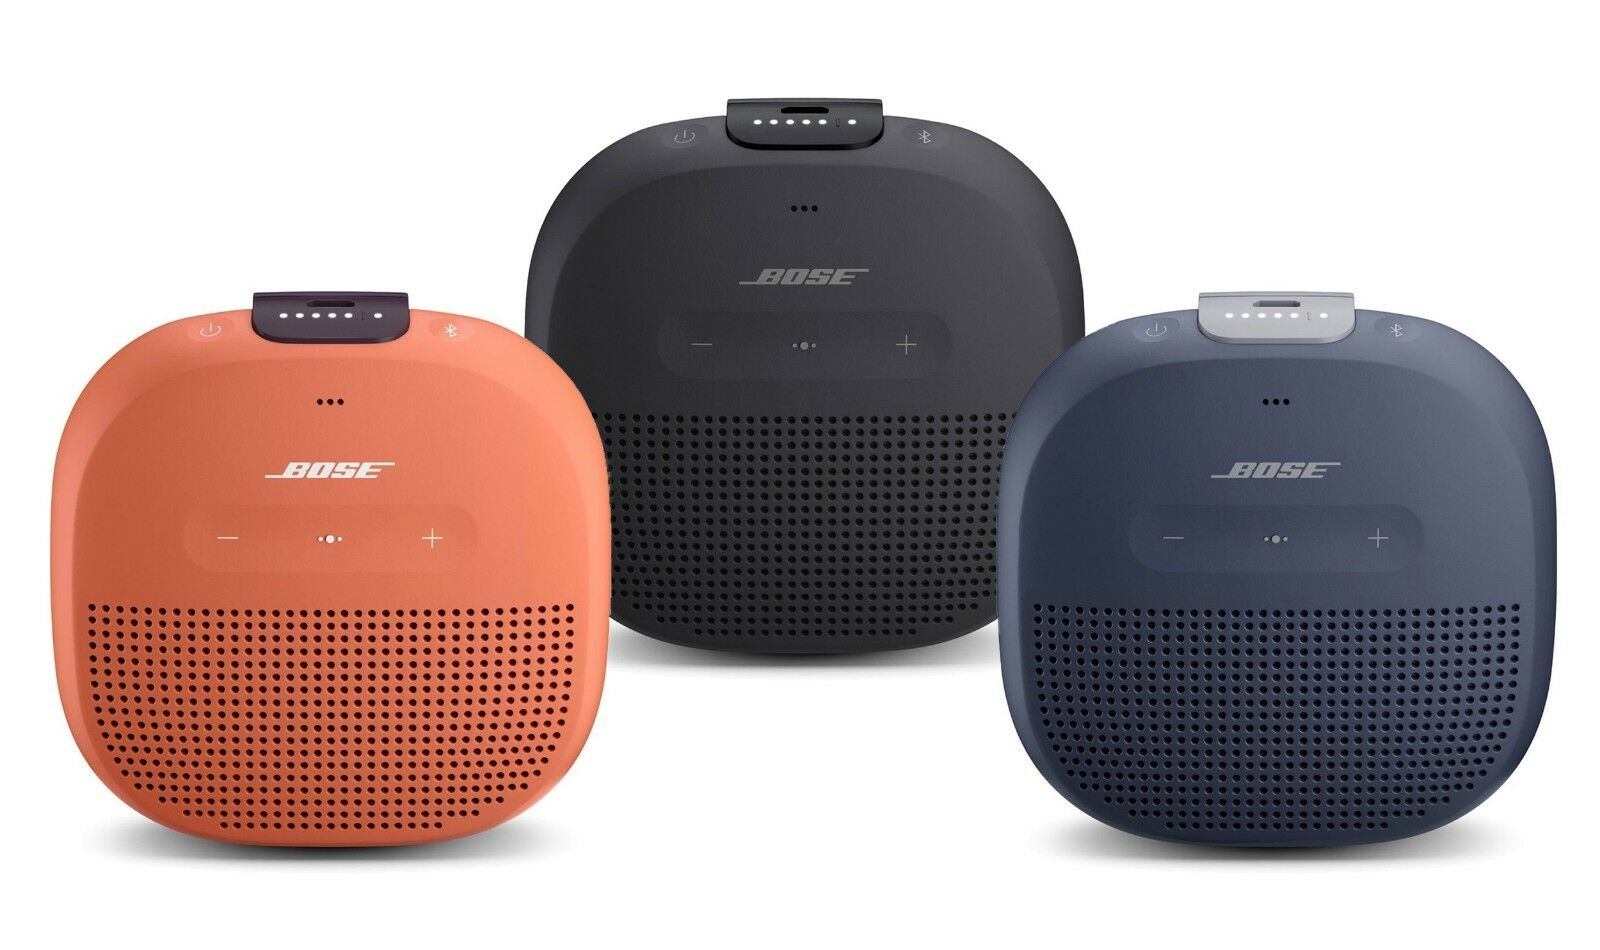 Bose SoundLink Micro Waterproof Portable Wireless Bluetooth